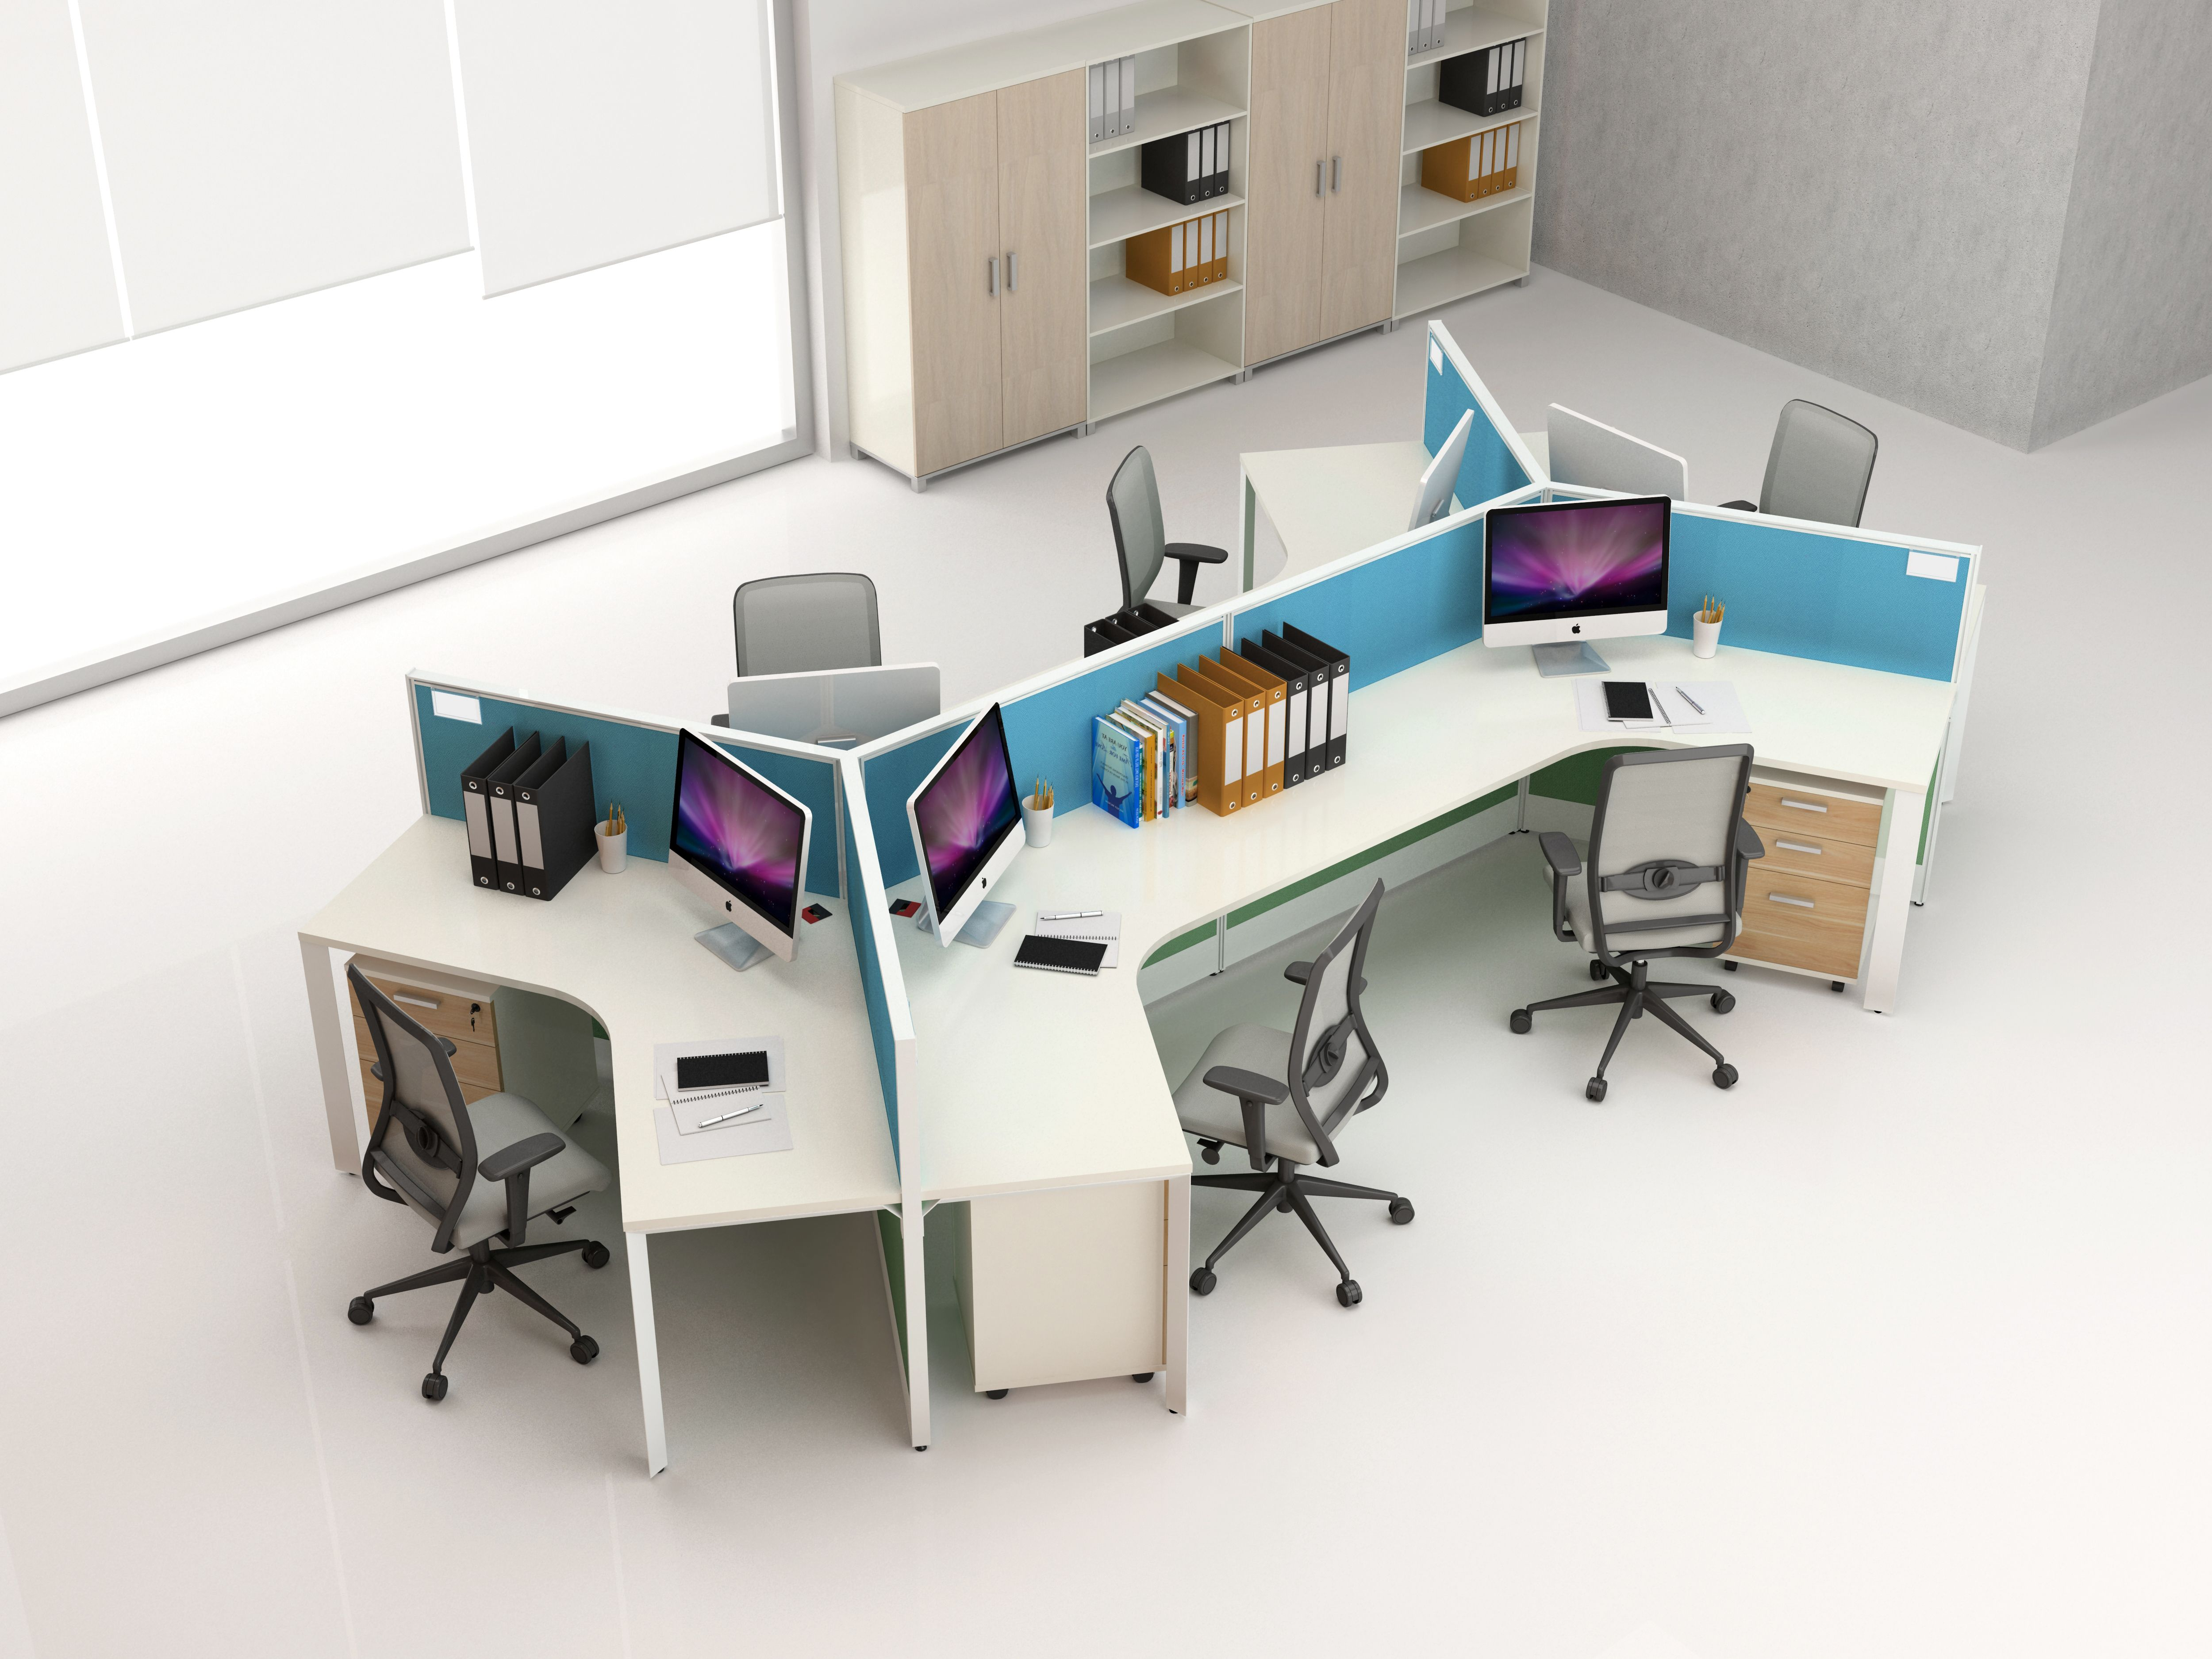 Office Workstation For 6 Person Office Layout Office Workstations Office